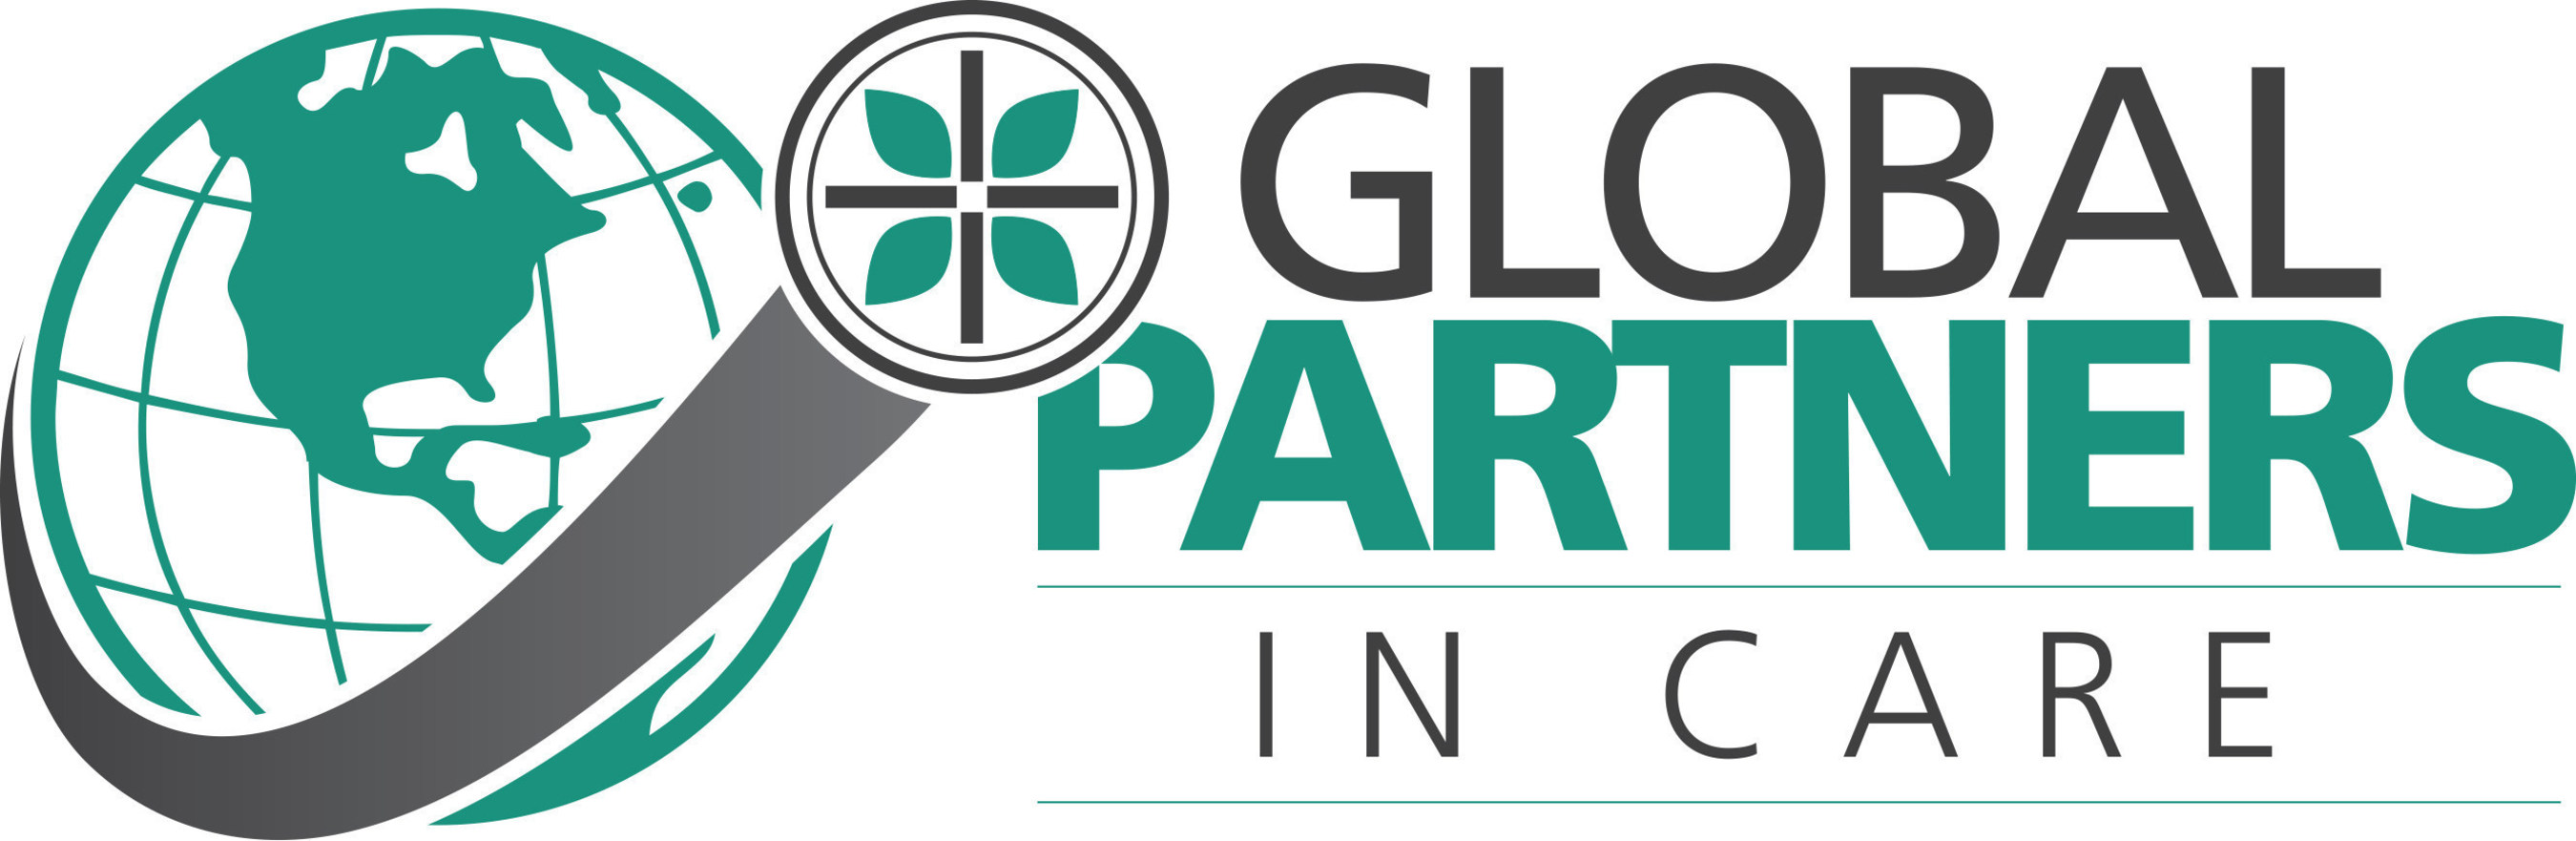 Global Partners in Care Receives National Award for Innovation and Effectiveness